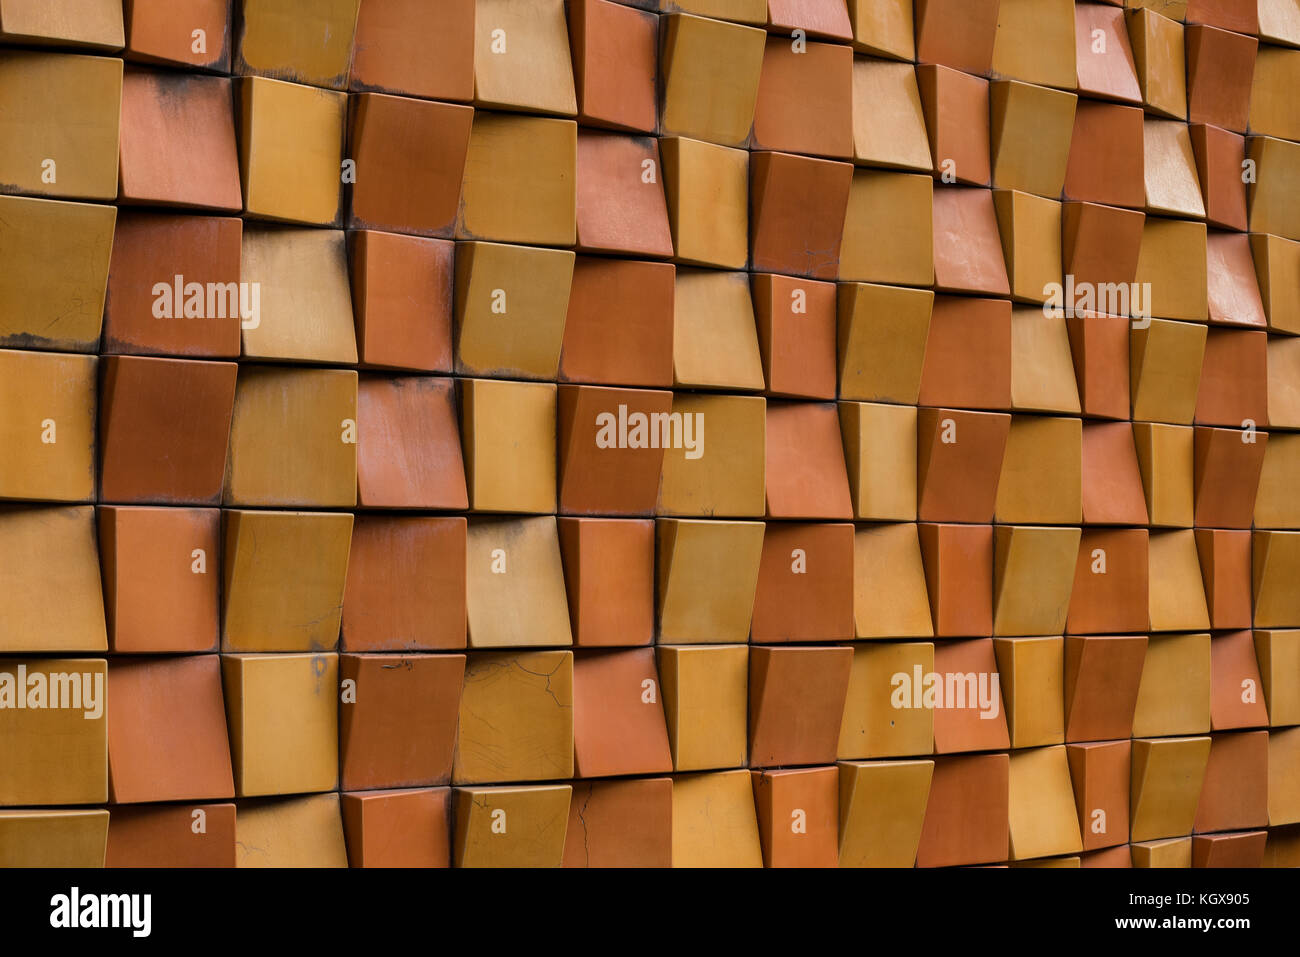 Exterior brick wall in multiple shades of yellow and orange forming decorative pattern in city - Stock Image